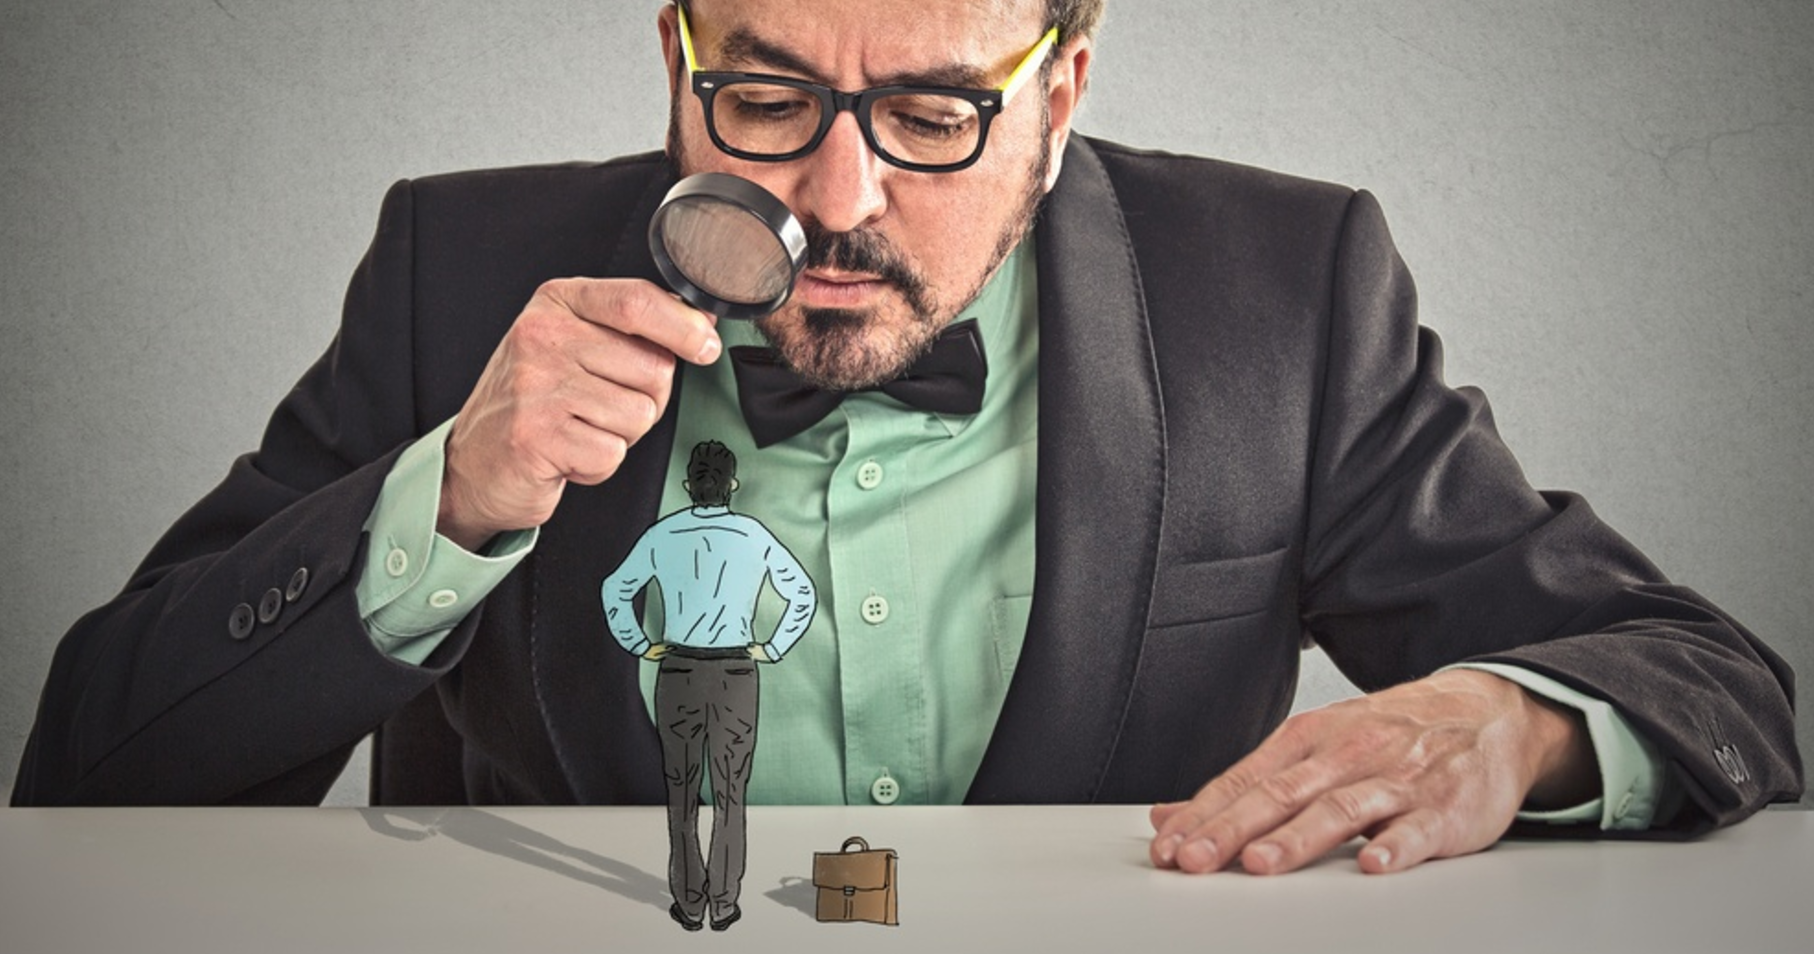 Top 5 Common Issues in Financial Due Diligence